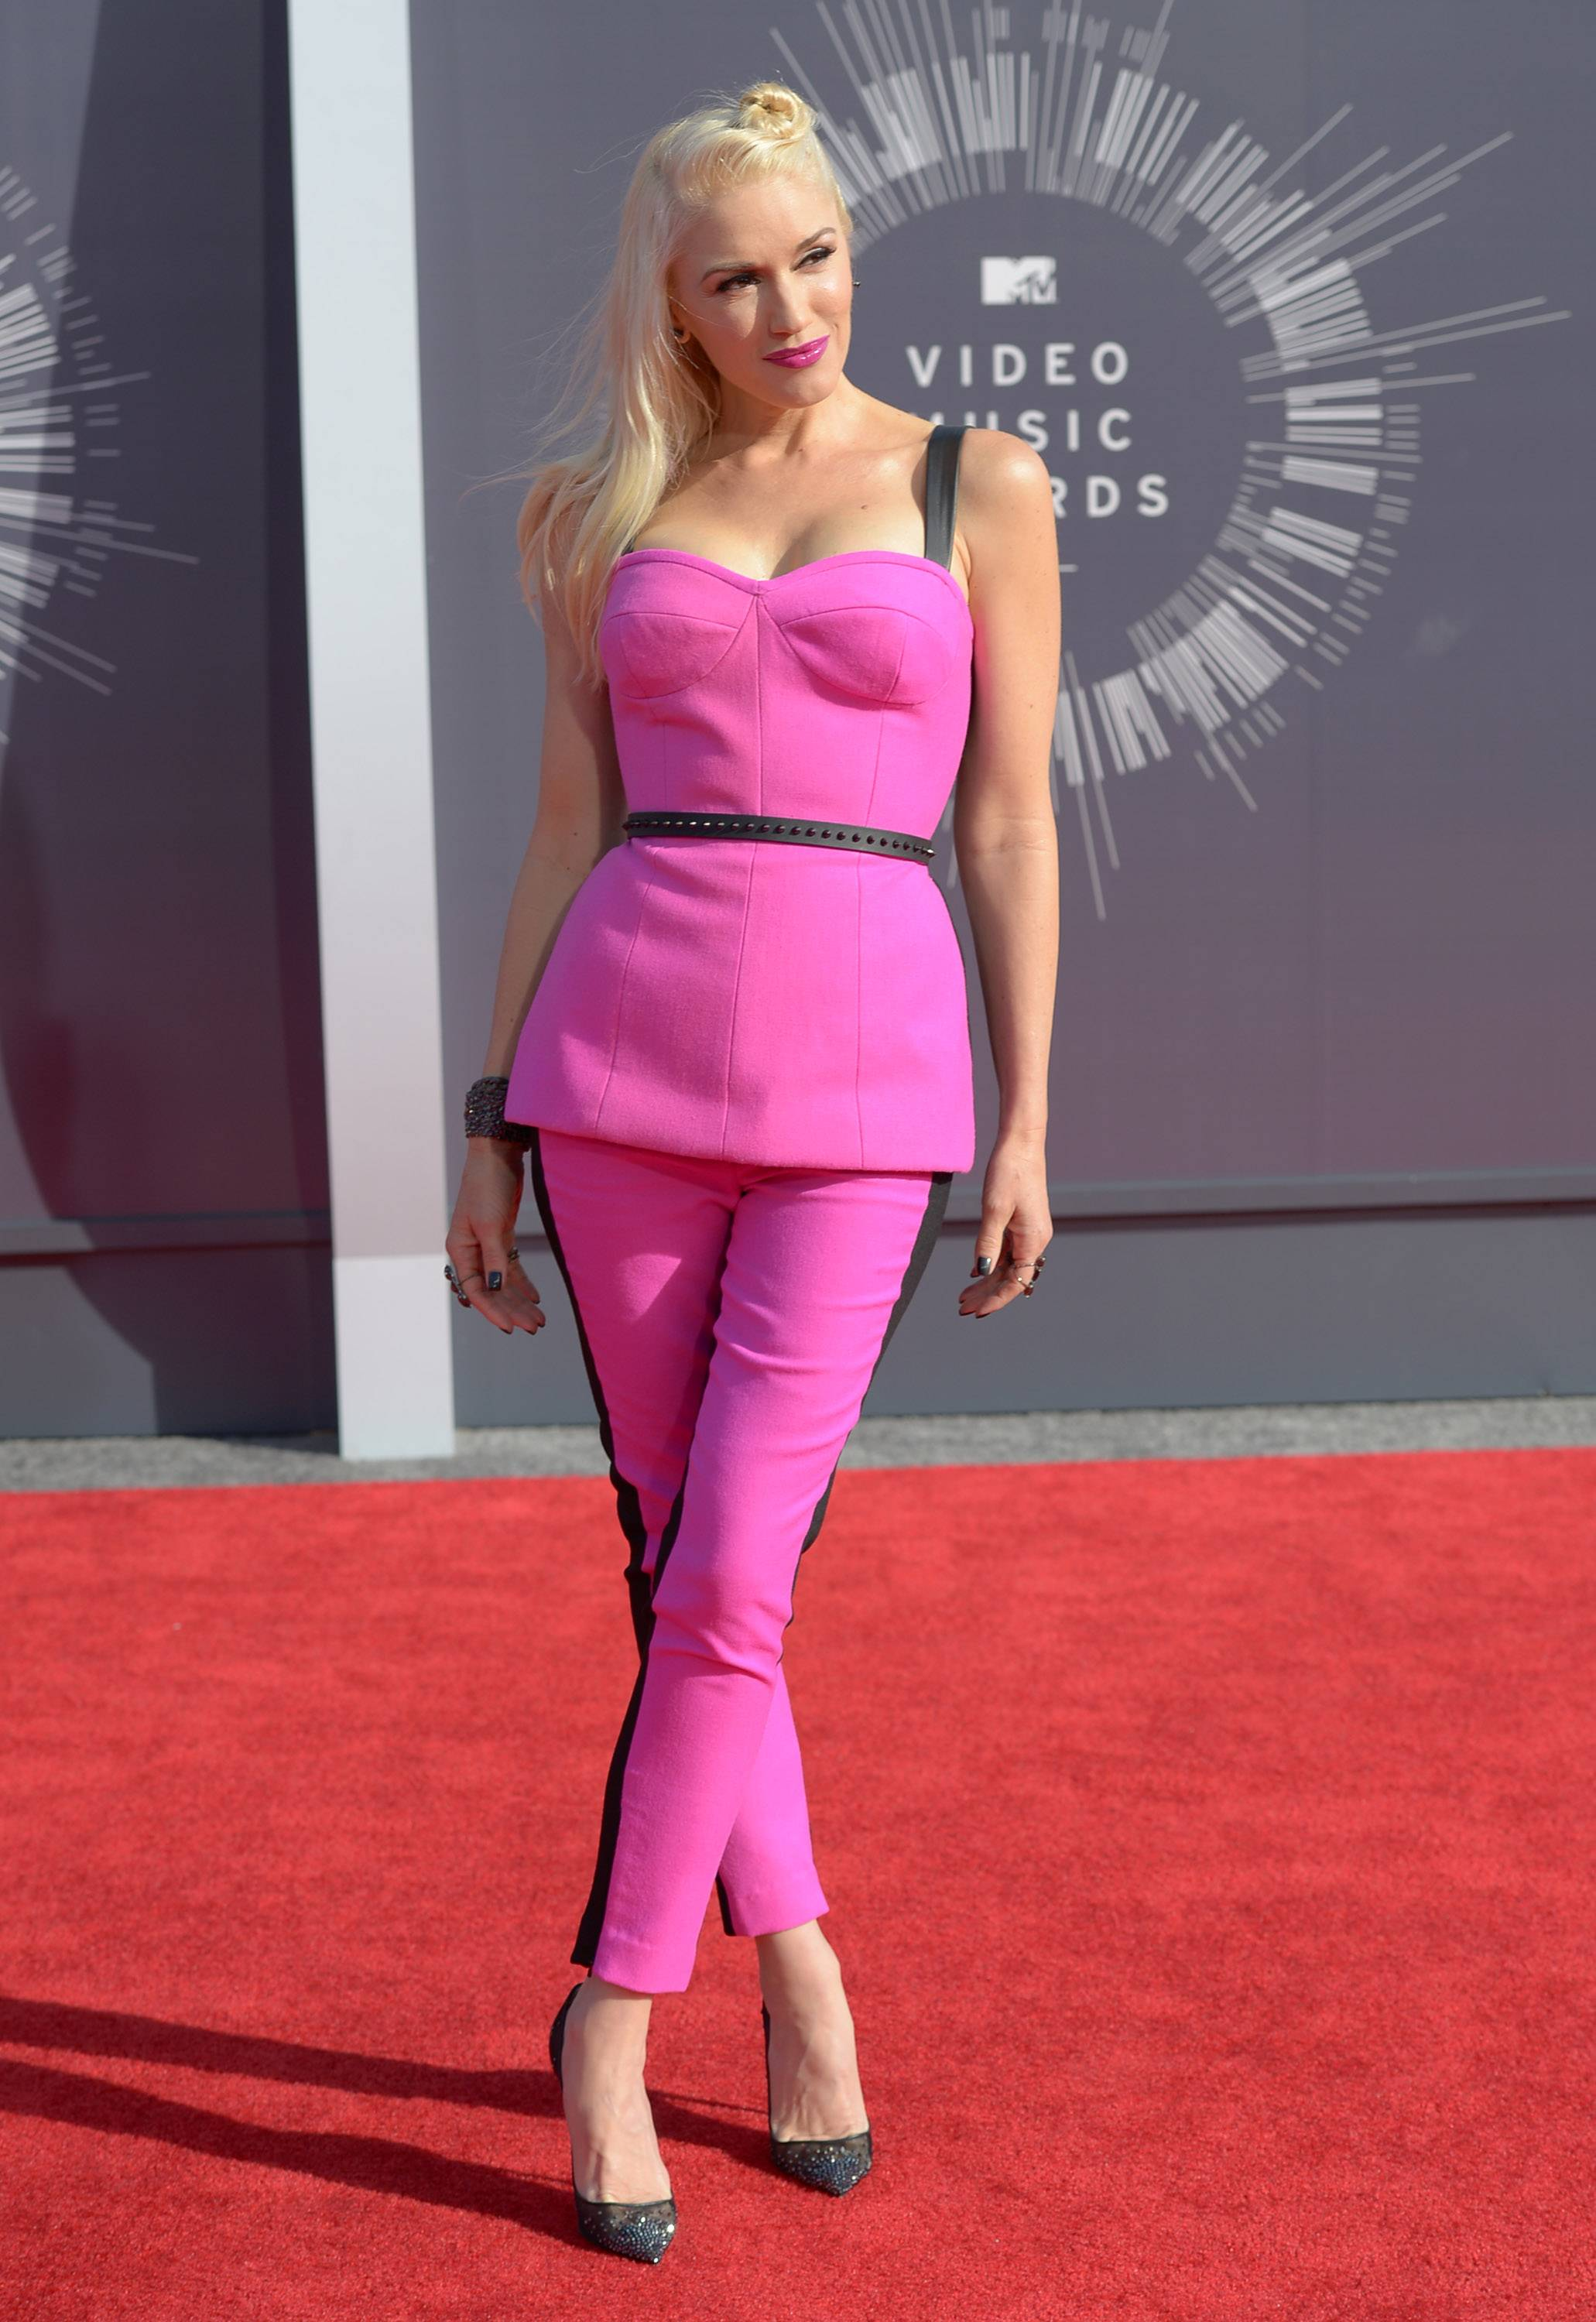 TIE: Diggin' the hot pink, not diggin' the hair on Gwen Stefani.